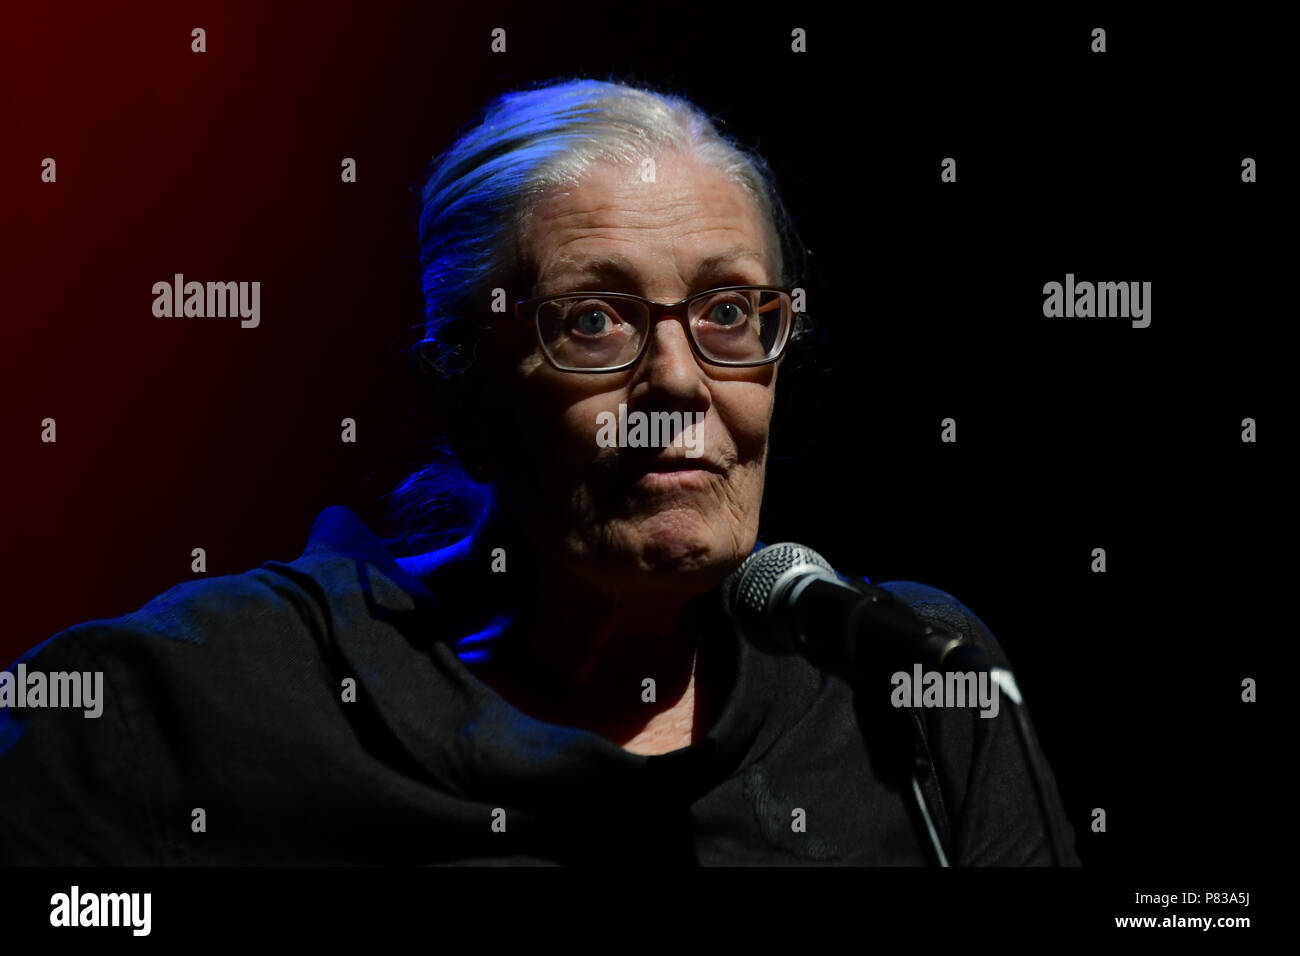 London, UK. 8th July 2018. Speaker Vanessa Redgrave at the Just Say No - Artists Against Trump & War host by Stop the War Coalition, Trump is not welcome in the UK at The Shaw Theatre on 8th July 2018. Credit: Picture Capital/Alamy Live News - Stock Image